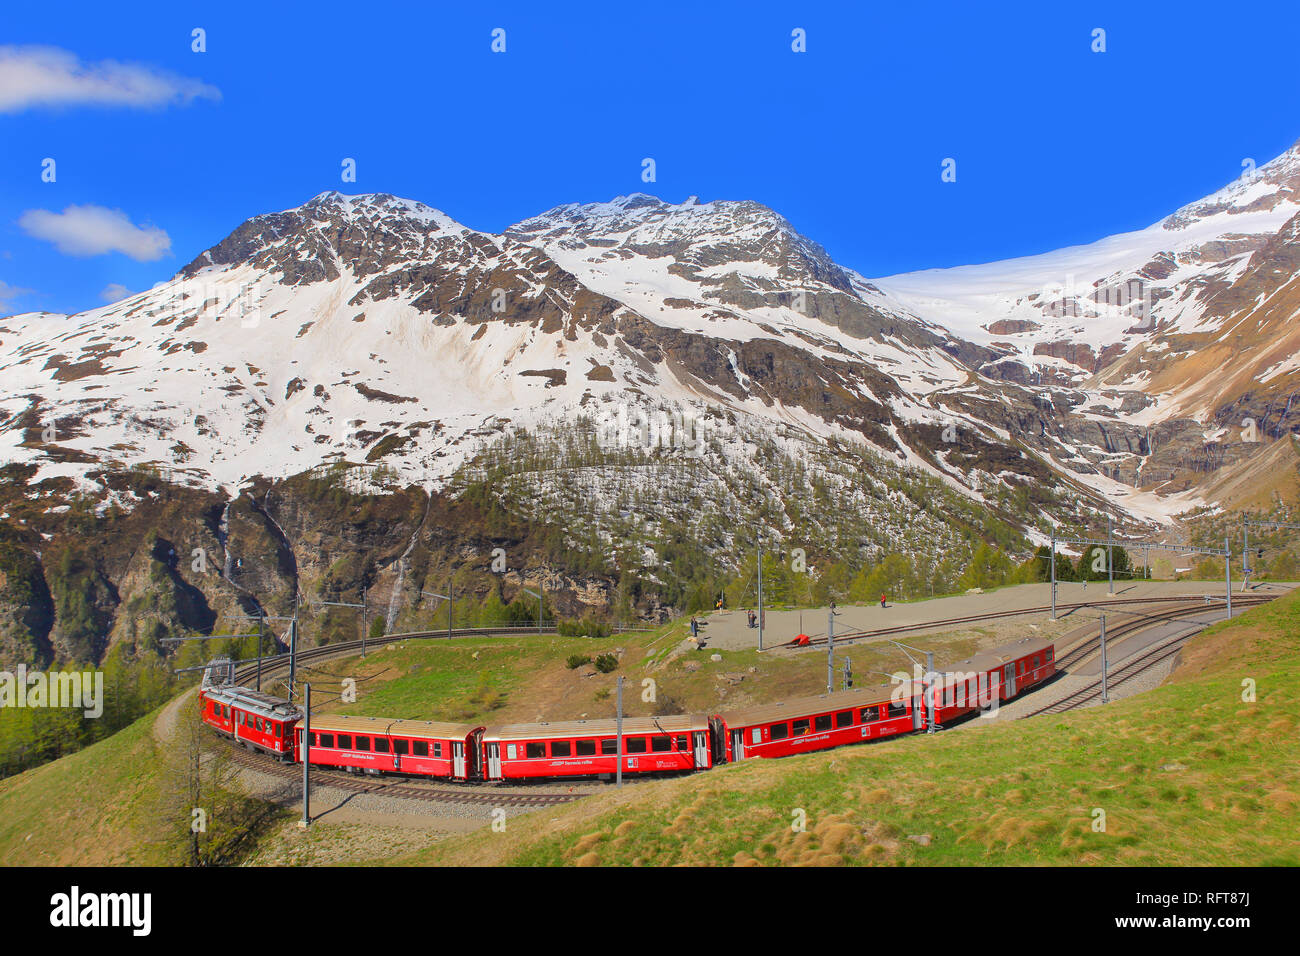 Alp Grum Station, Canton of Graubunden (Grigioni), Switzerland, Europe - Stock Image